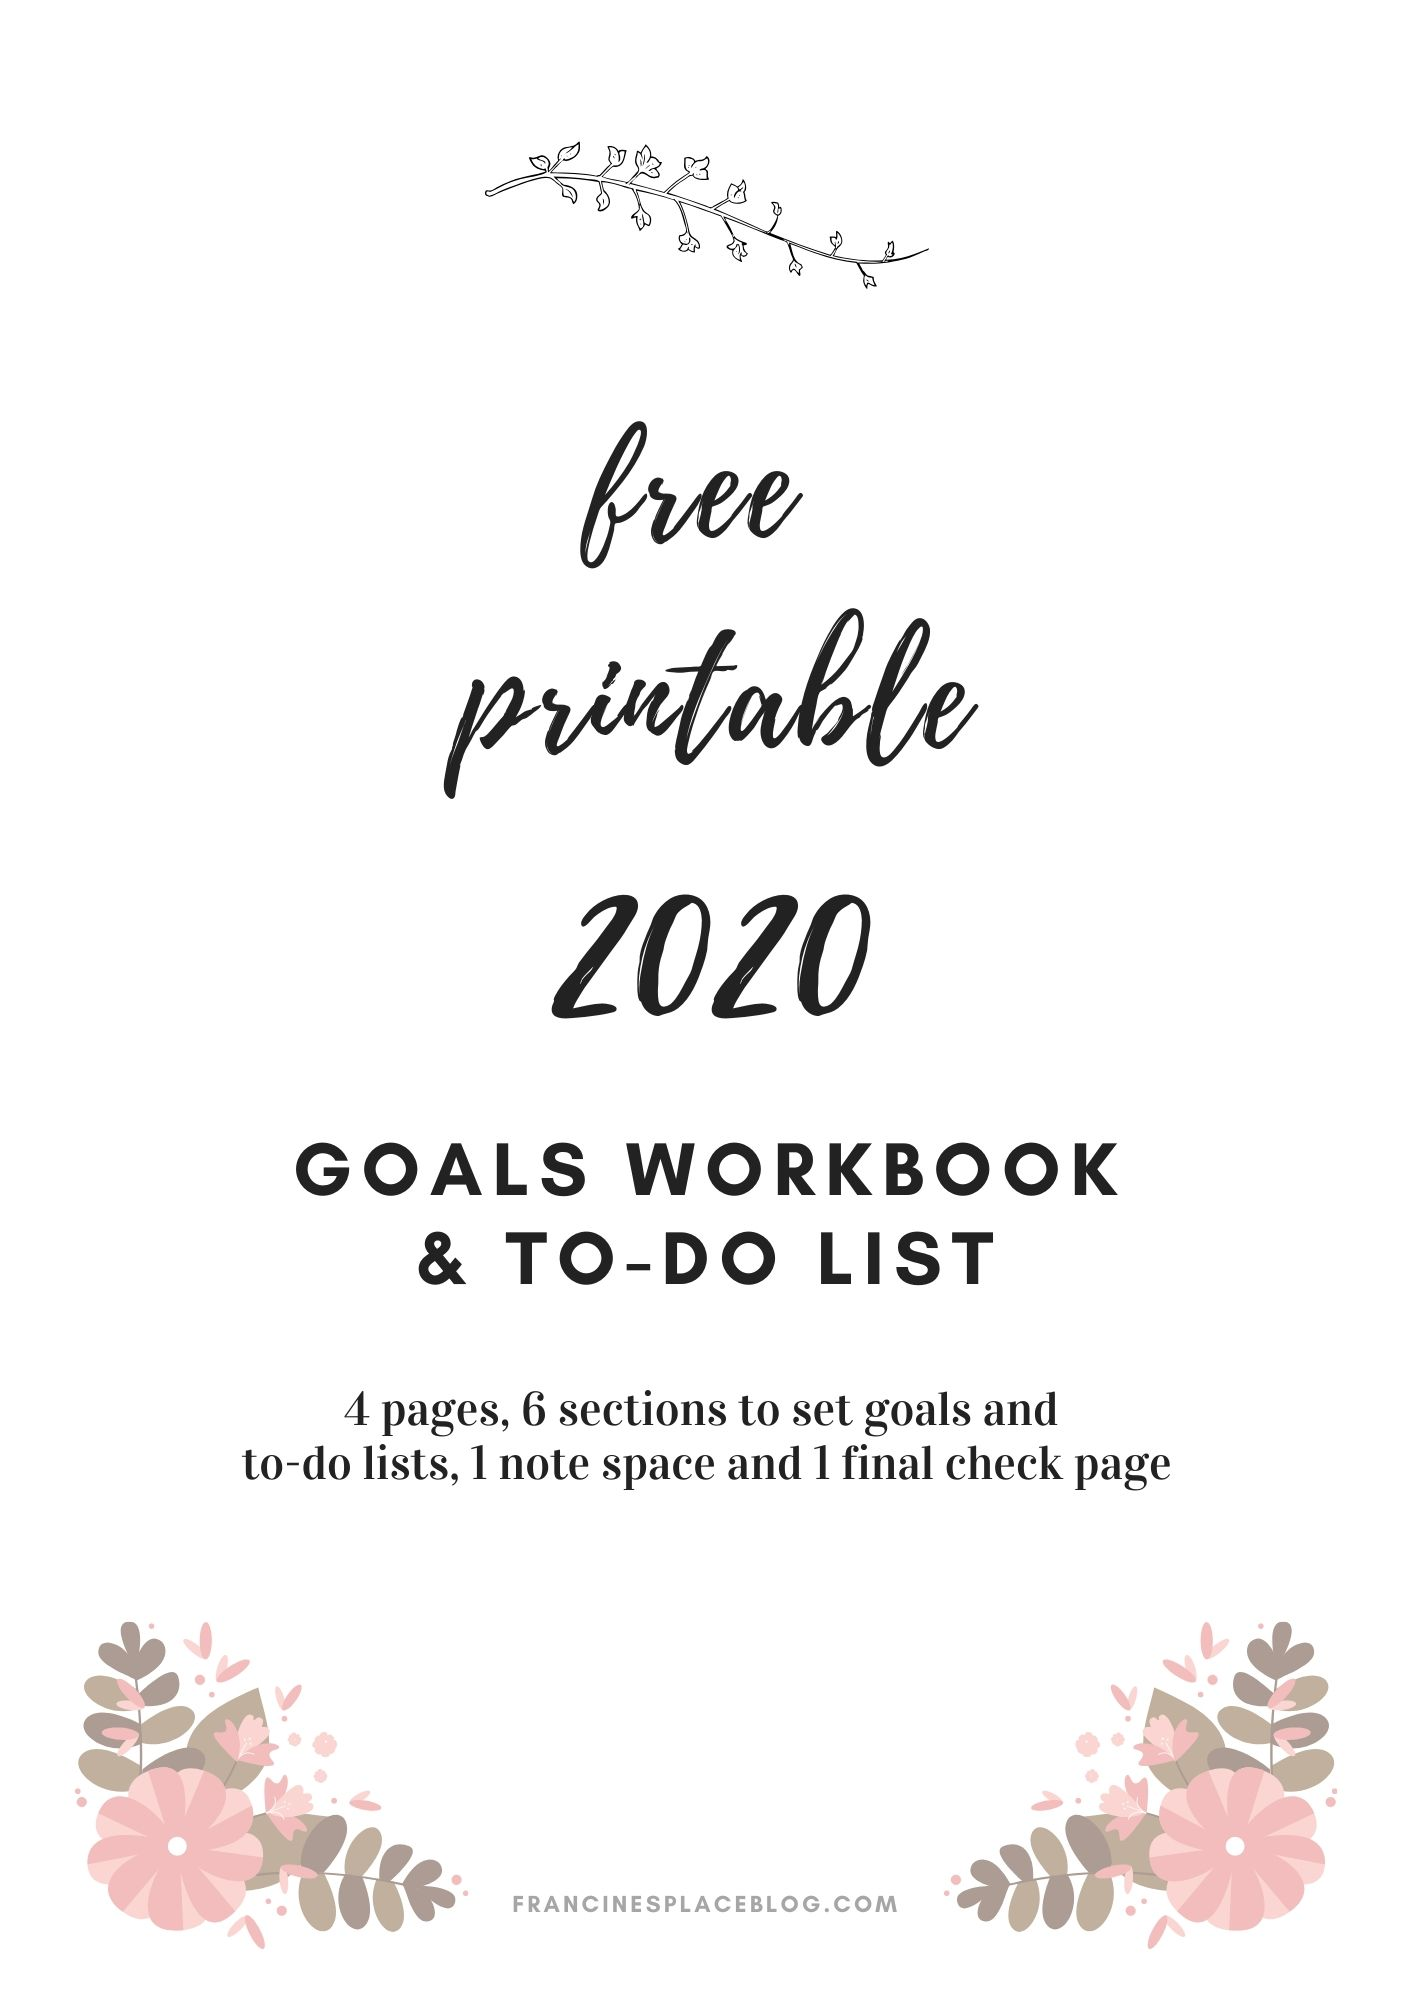 free printable 2020 goals to do list work sheet book planner gratis obiettivi stampabile download template francinesplaceblog